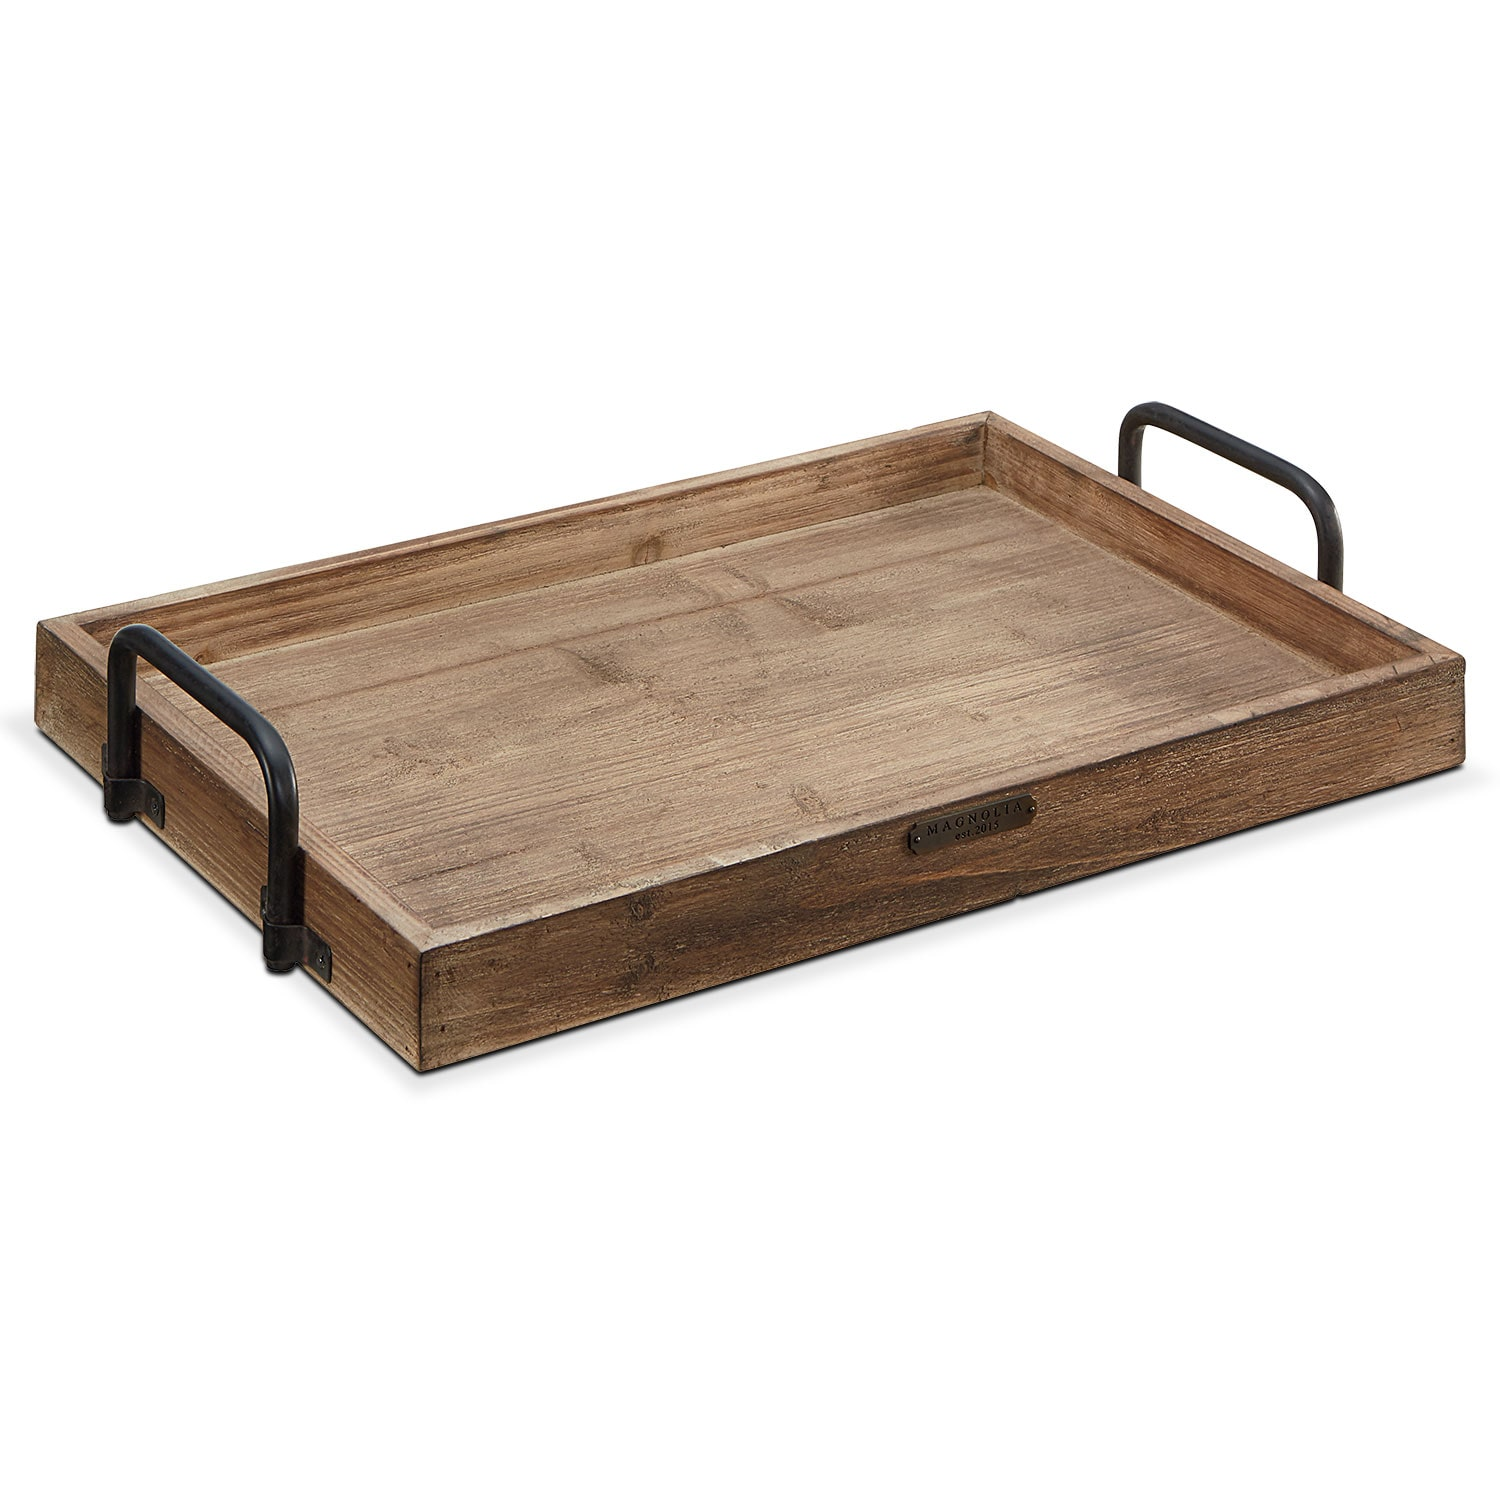 Breakfast Tray - Black Handles